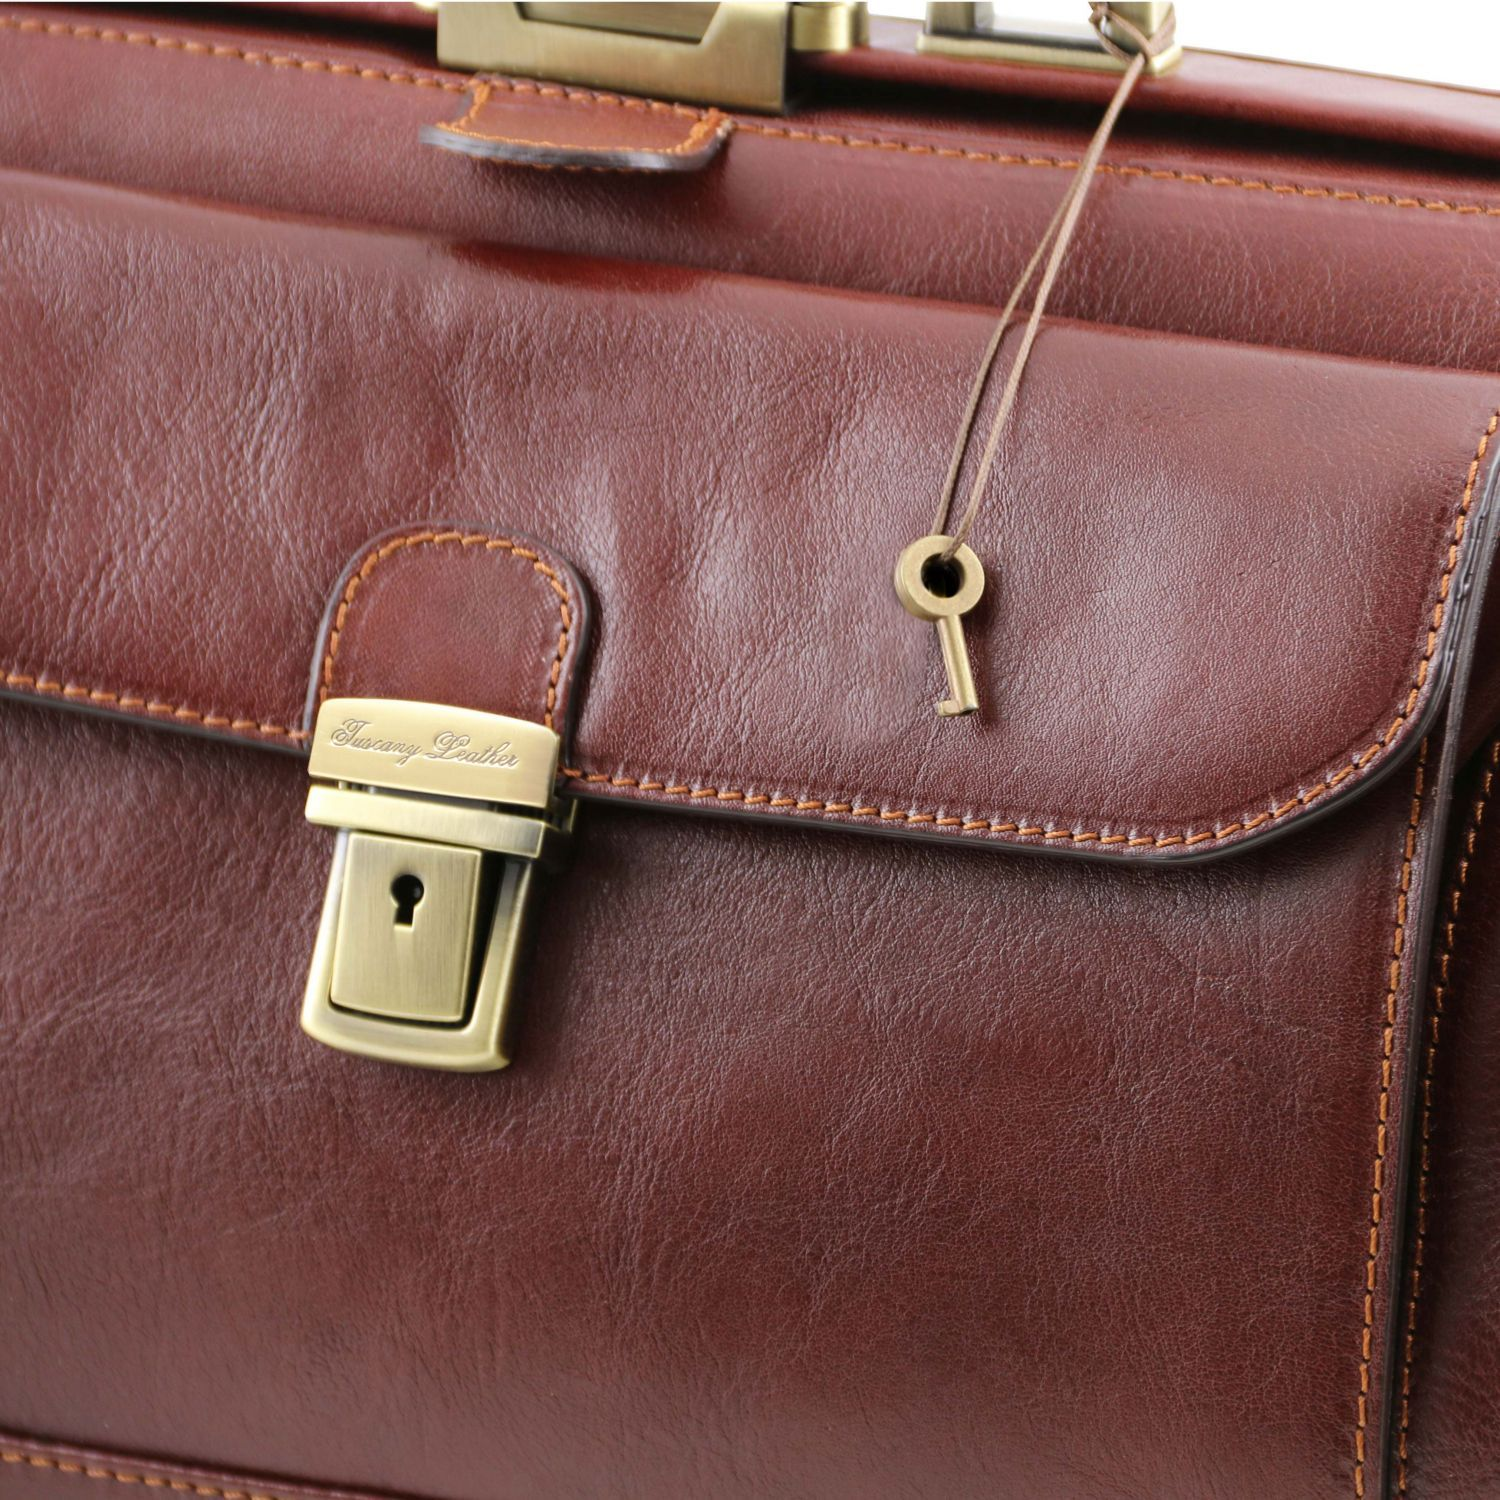 Giotto - Exclusive double-bottom leather doctor bag (TL141297) - Doctor bags | DILUSSOBAGS